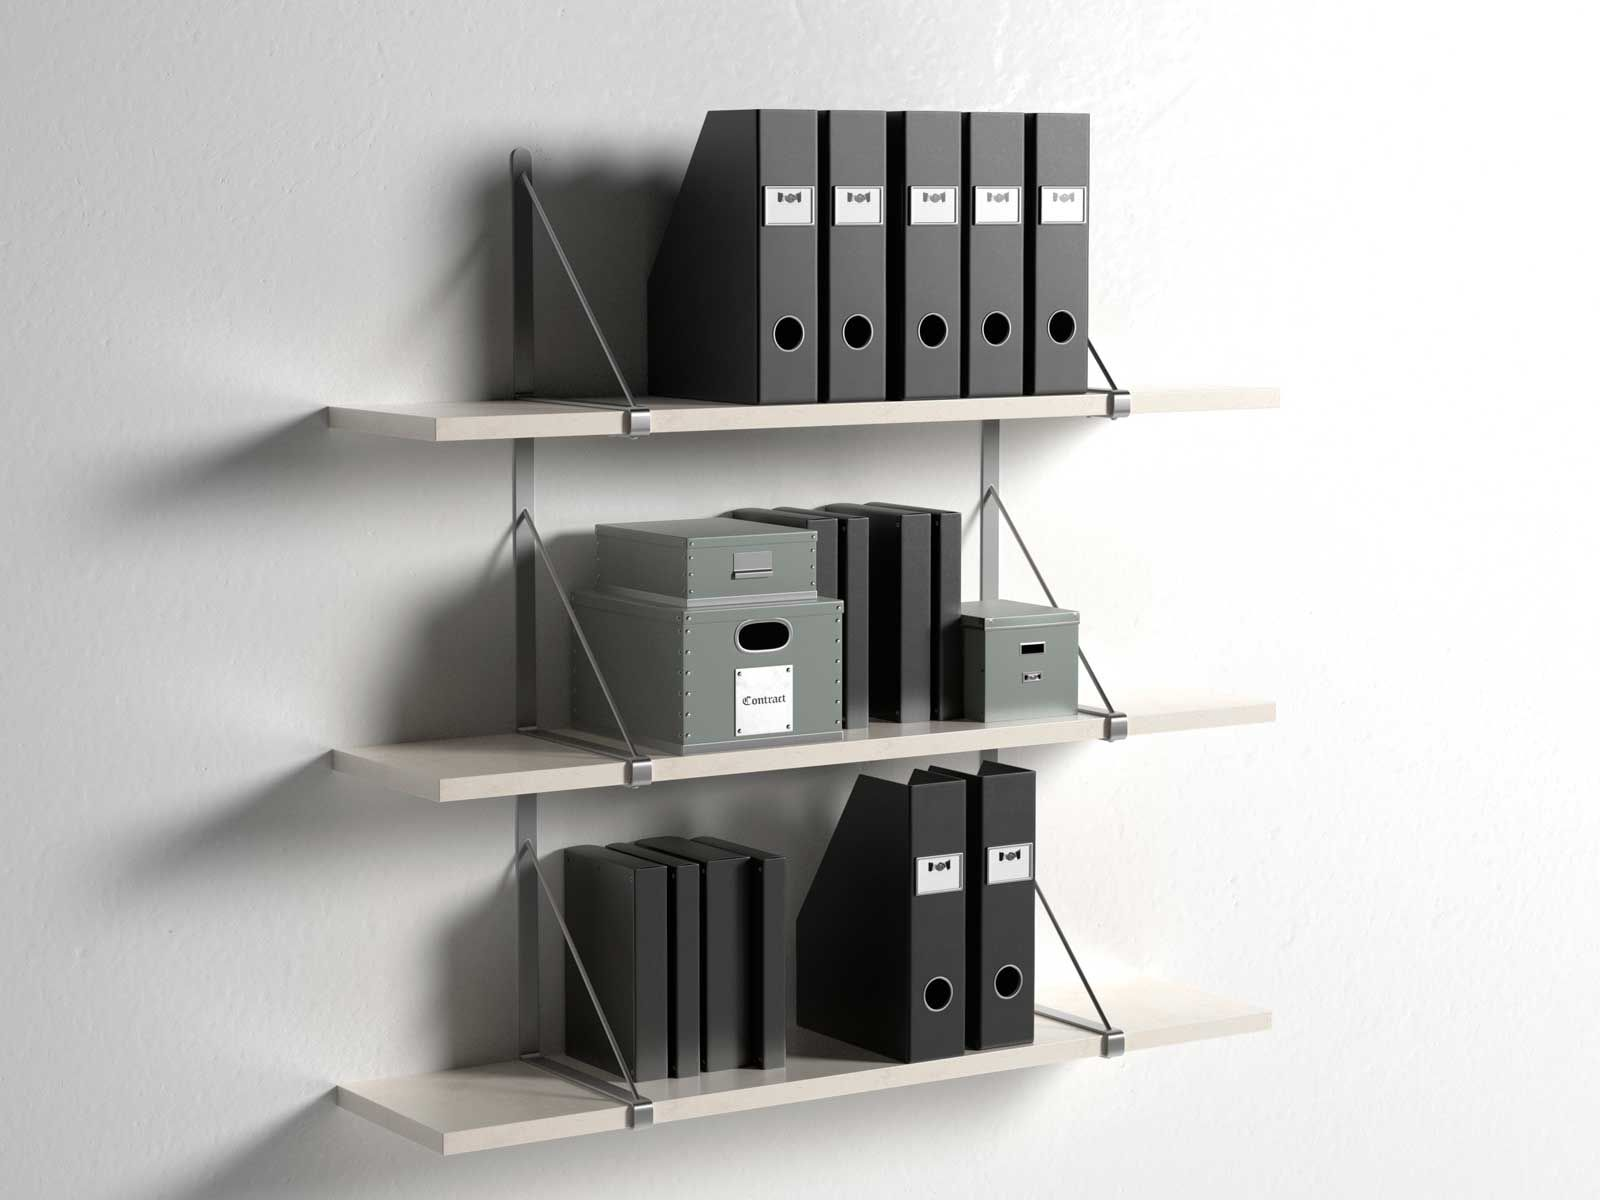 gallo wall shelves with office organizers - ekby gallo wall shelves with office organizers